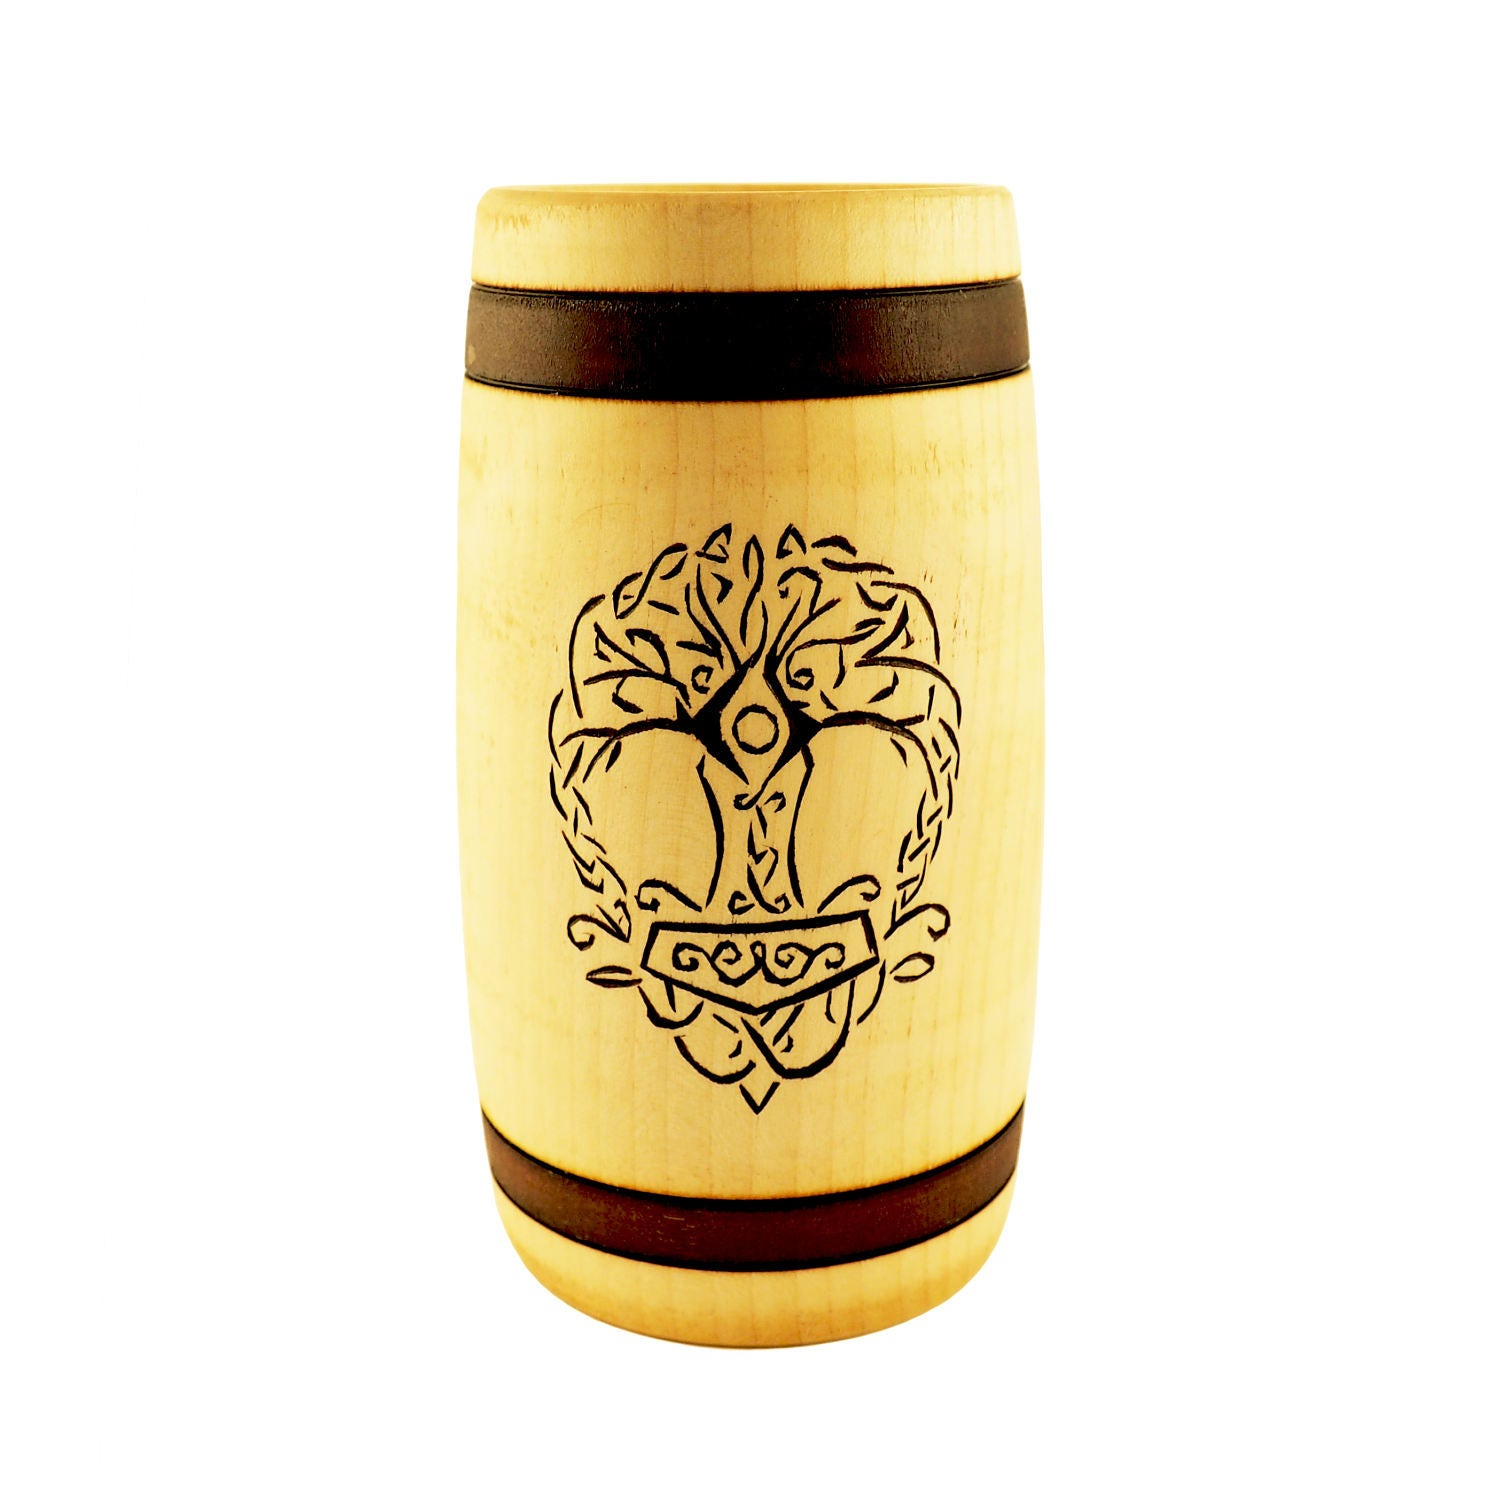 hand carved wooden beer mug 0 7 litre 23 oz with yggdrasil and